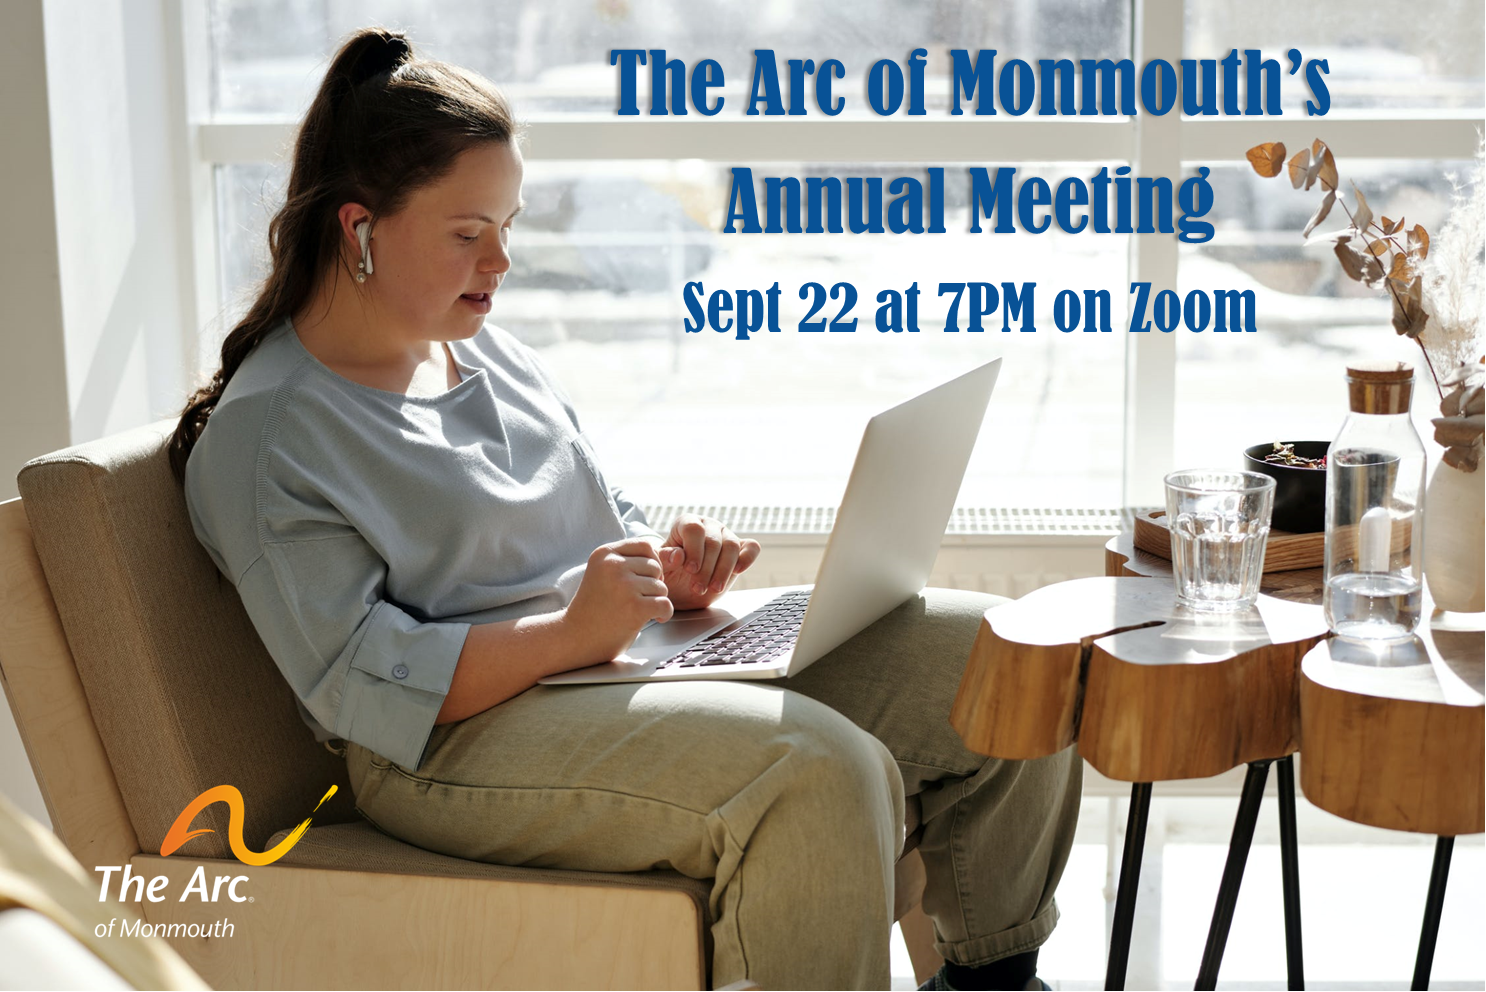 Annual Meeting 9/22 at 7PM